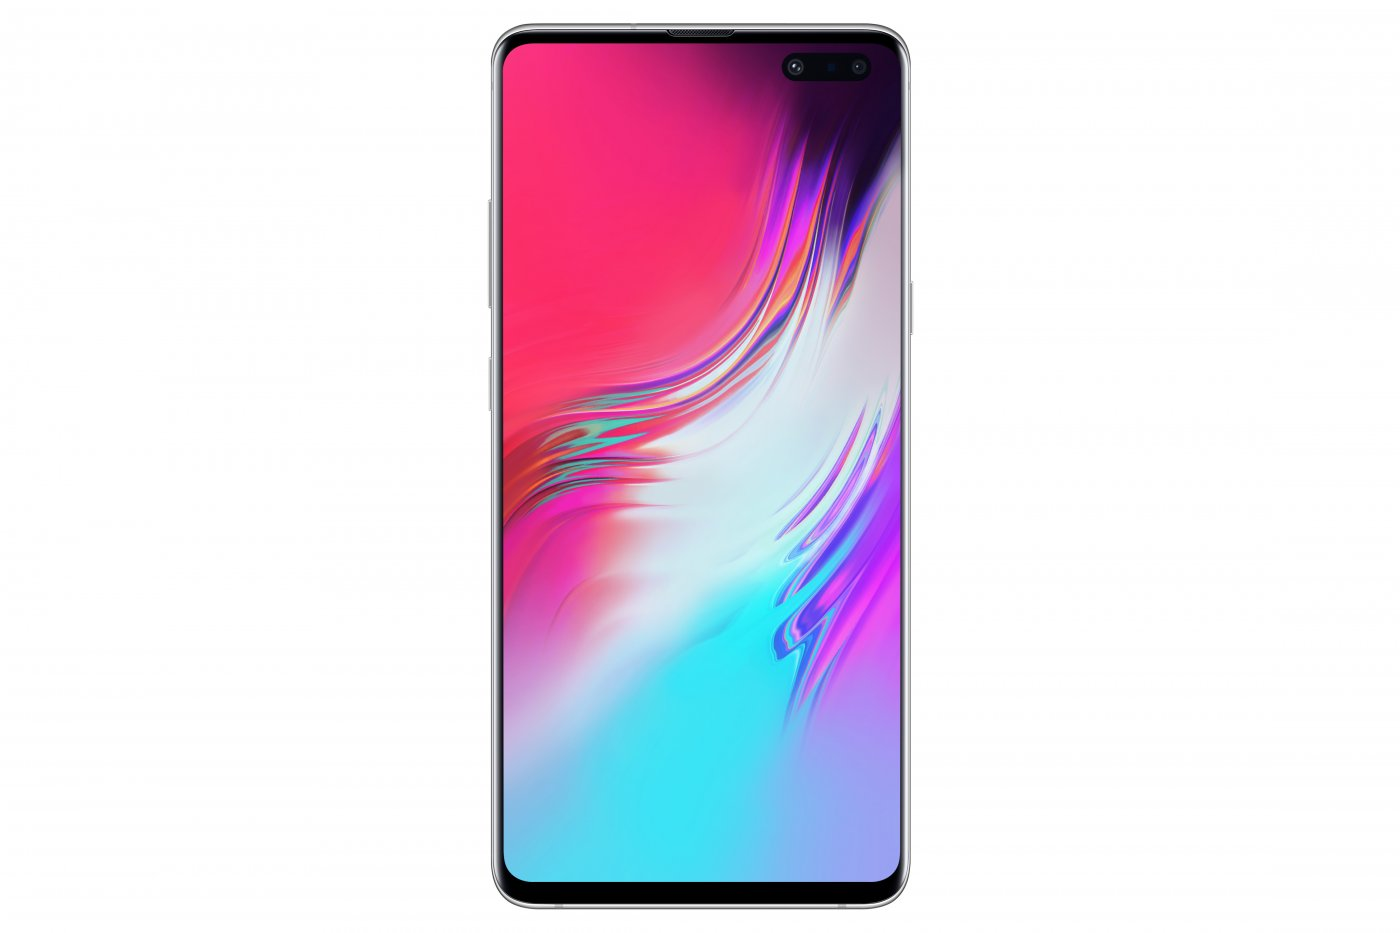 Samsung Galaxy S10 Display Rated As The Best On The Market - DisplayMate Report Suggests 1